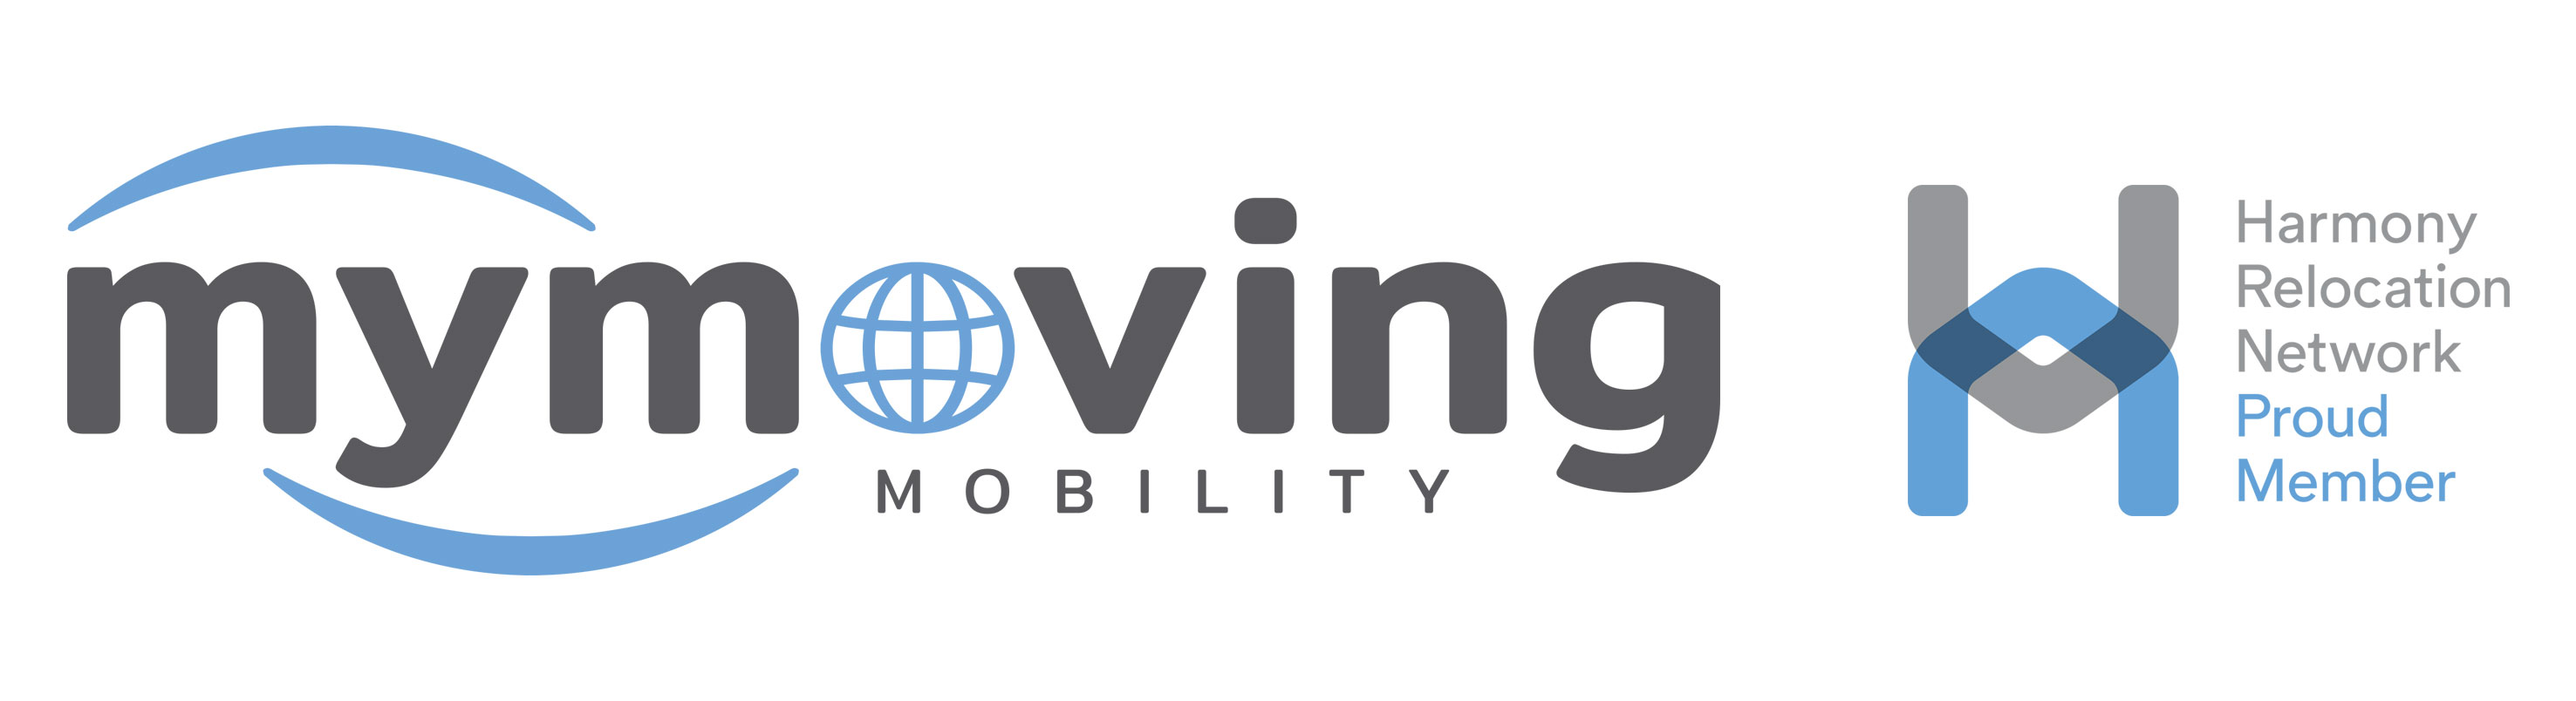 MyMoving Mobility